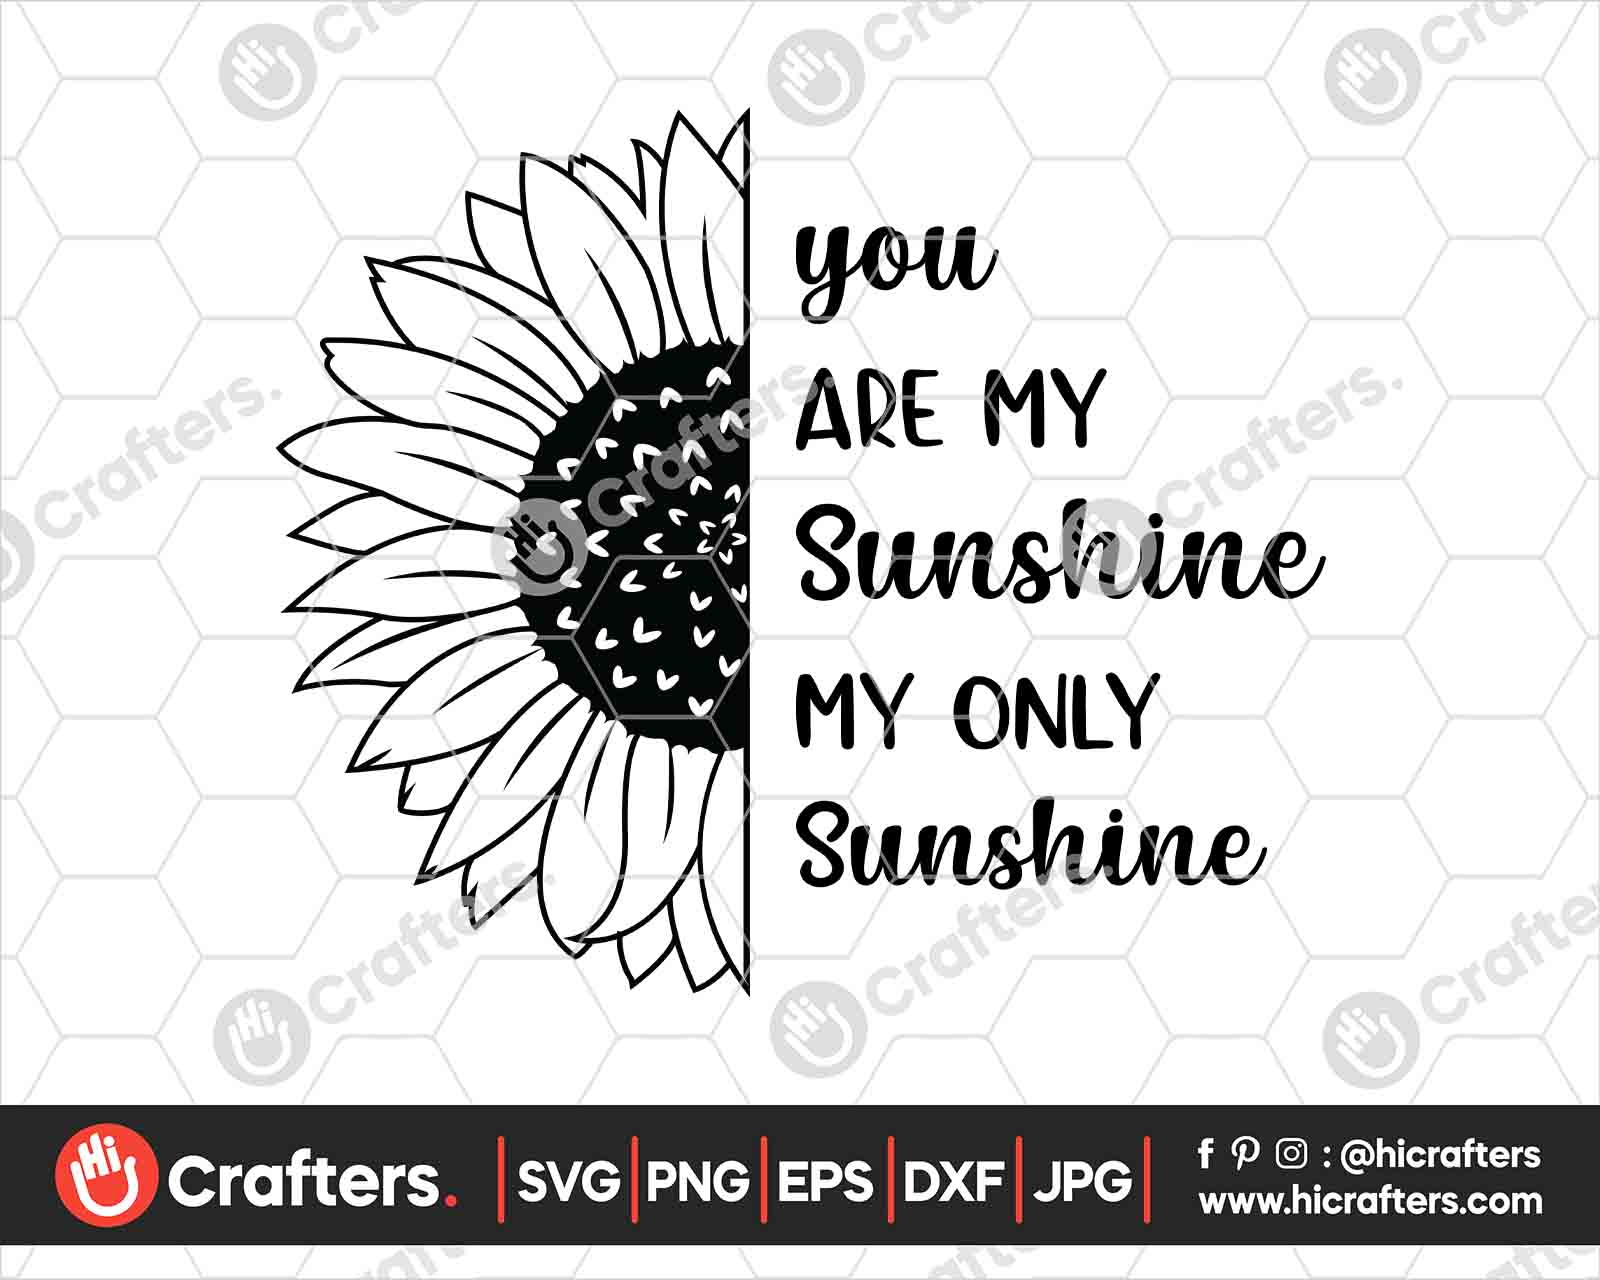 Sunflower You Are My Sunshine SVG PNG   Hi Crafters